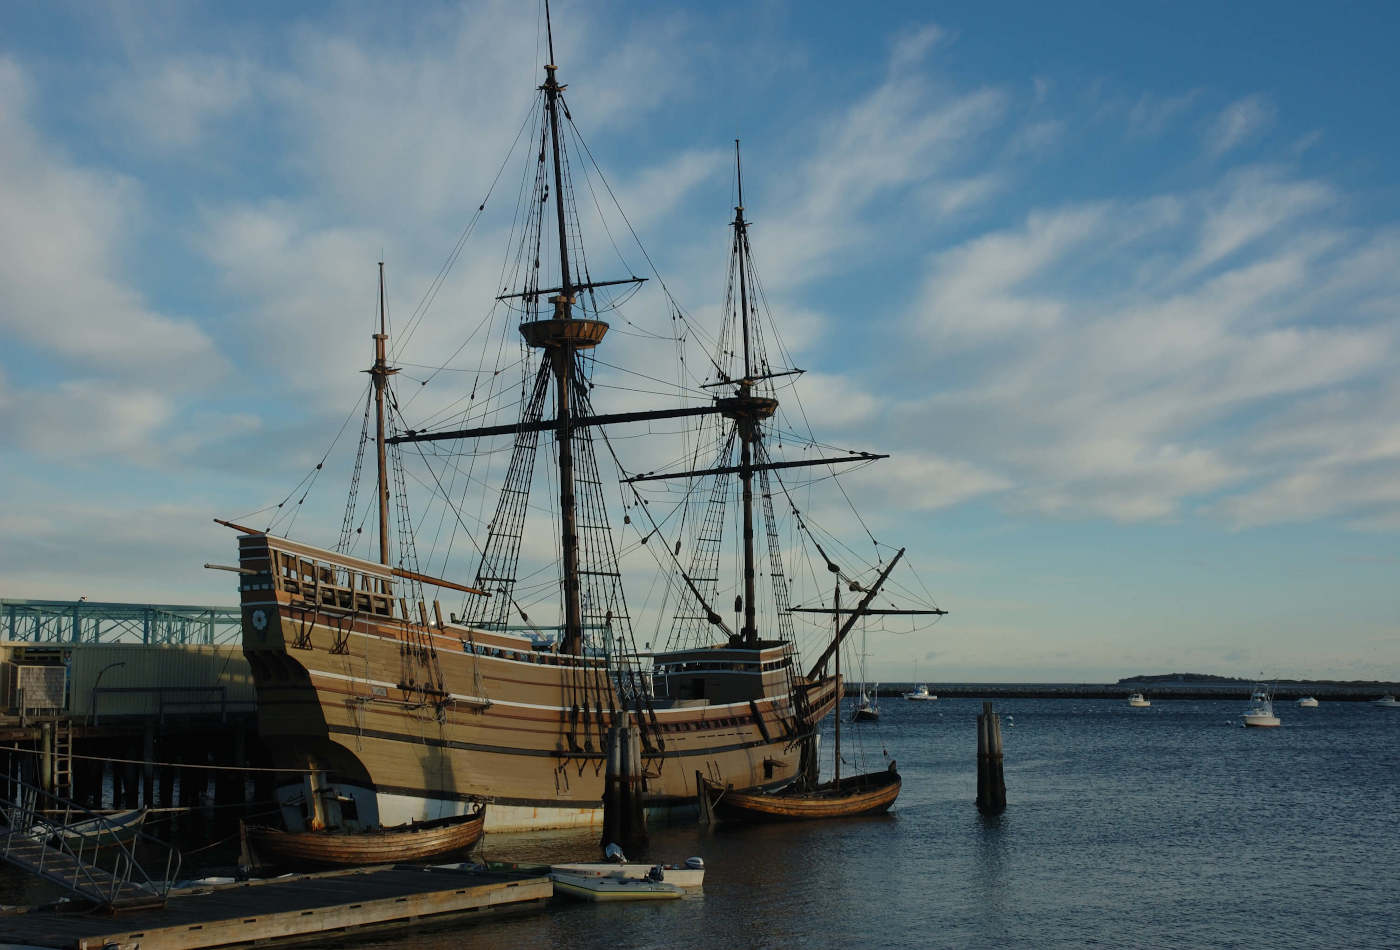 Mayflower replica ship in Plymouth, MA